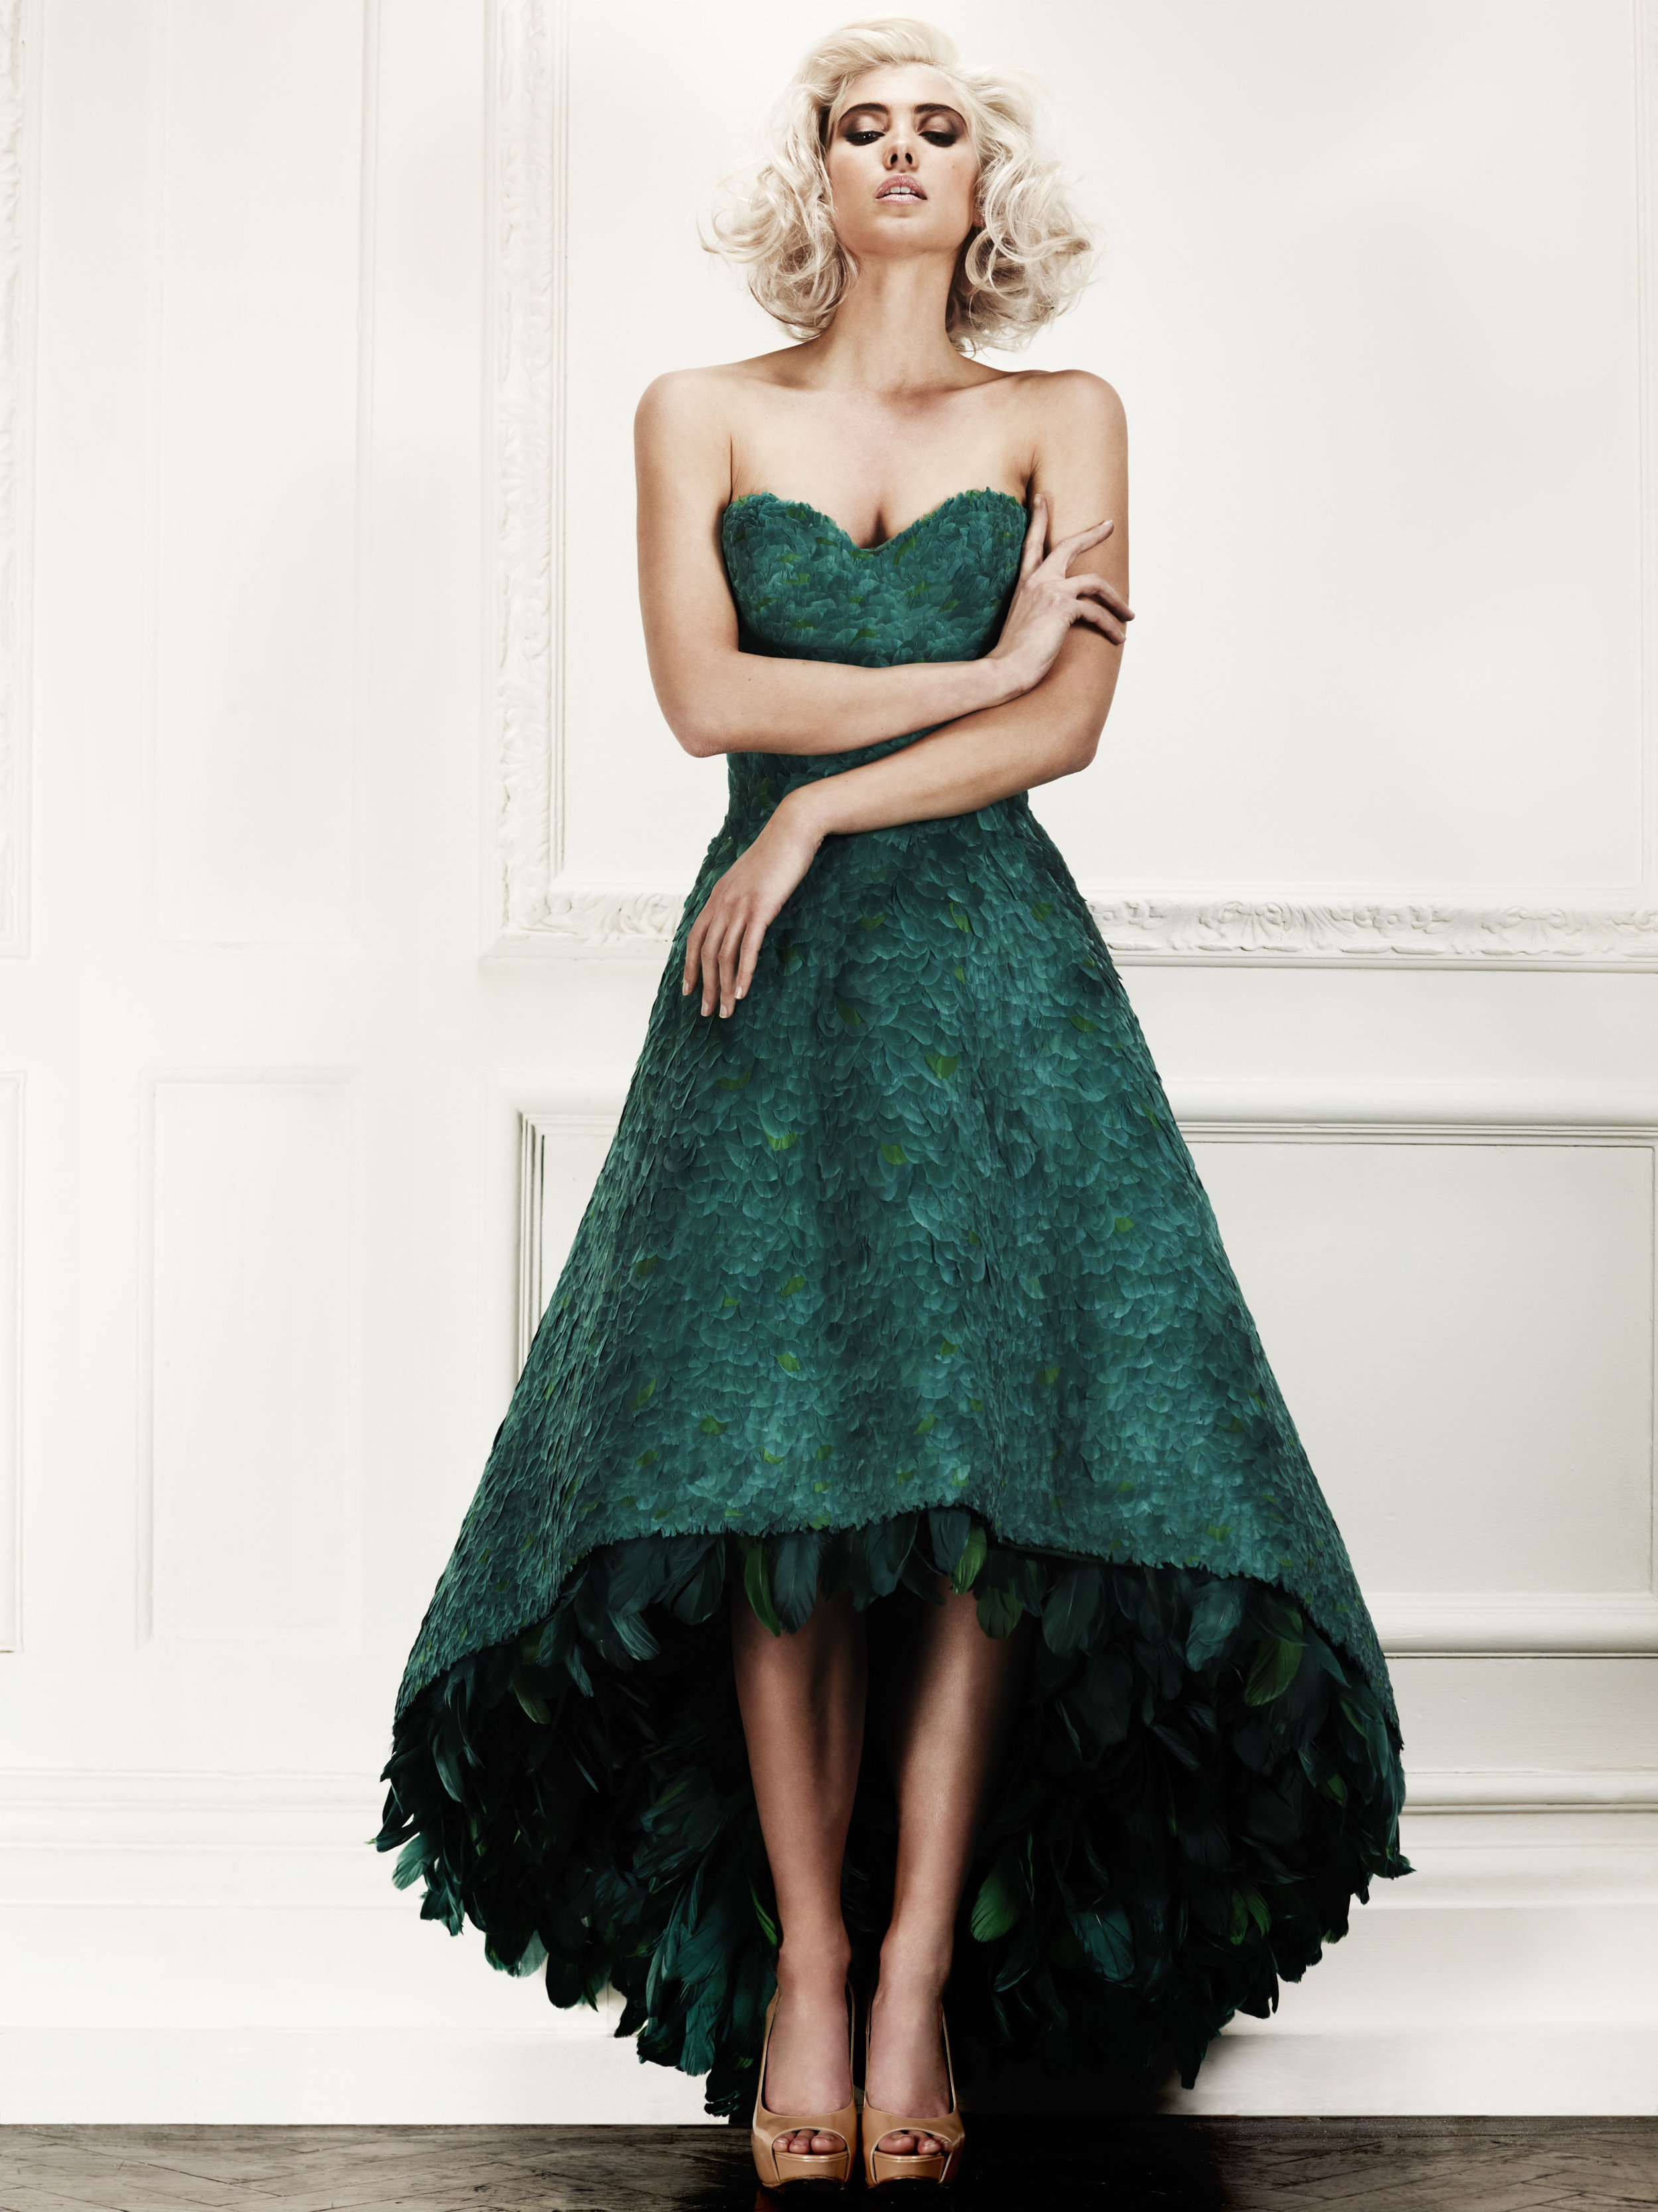 This is one of the hand made exquisite dresses that was shown during the Afternoon Tea -priced at £40,000!